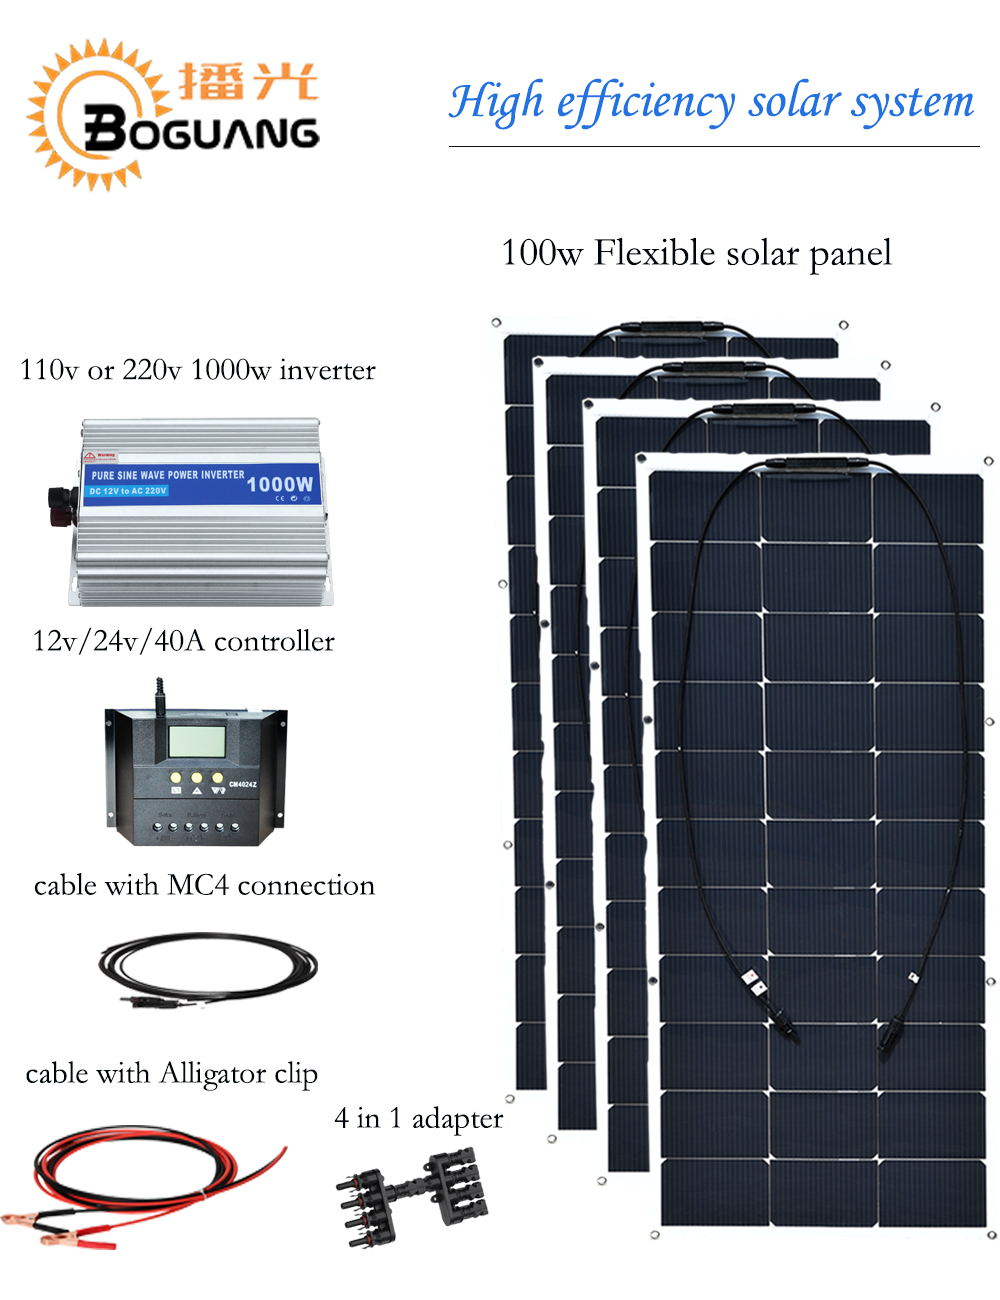 Boguang 400w solar system 100w semi flexible solar panel High efficiency monocrystalline silicon cell 12v battery  powred charge